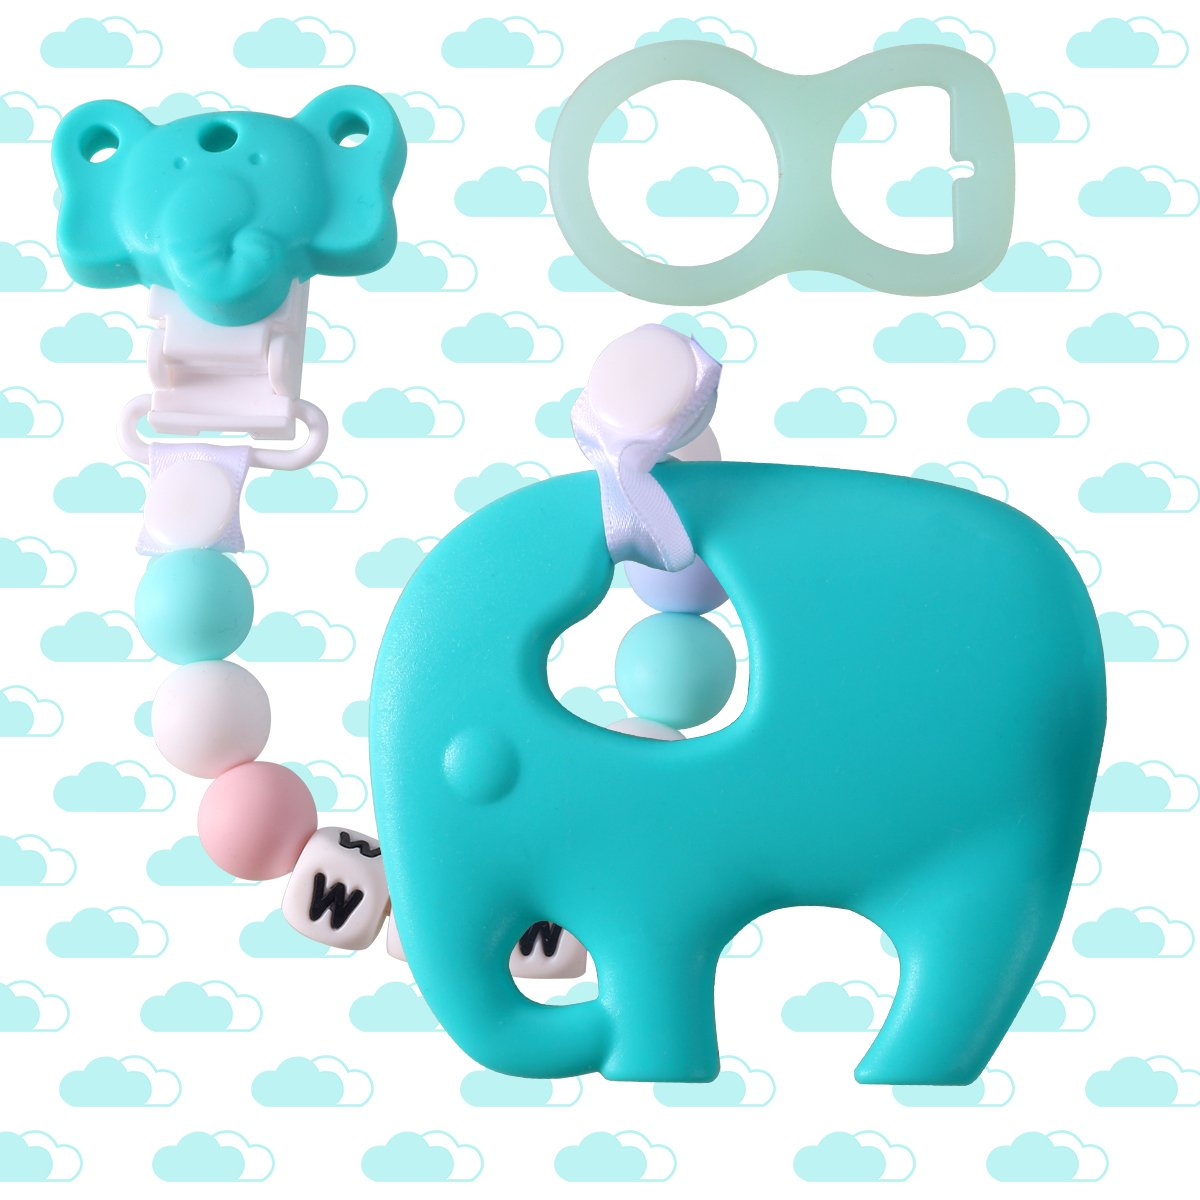 Baby Silicone Teething Toys BPA Free, DIY Elephant Teether with Pacifier Clip Holder Set Teething Pain Relief Toy Gums Chew for Newborn Infant Toddler Baby Yinuoday